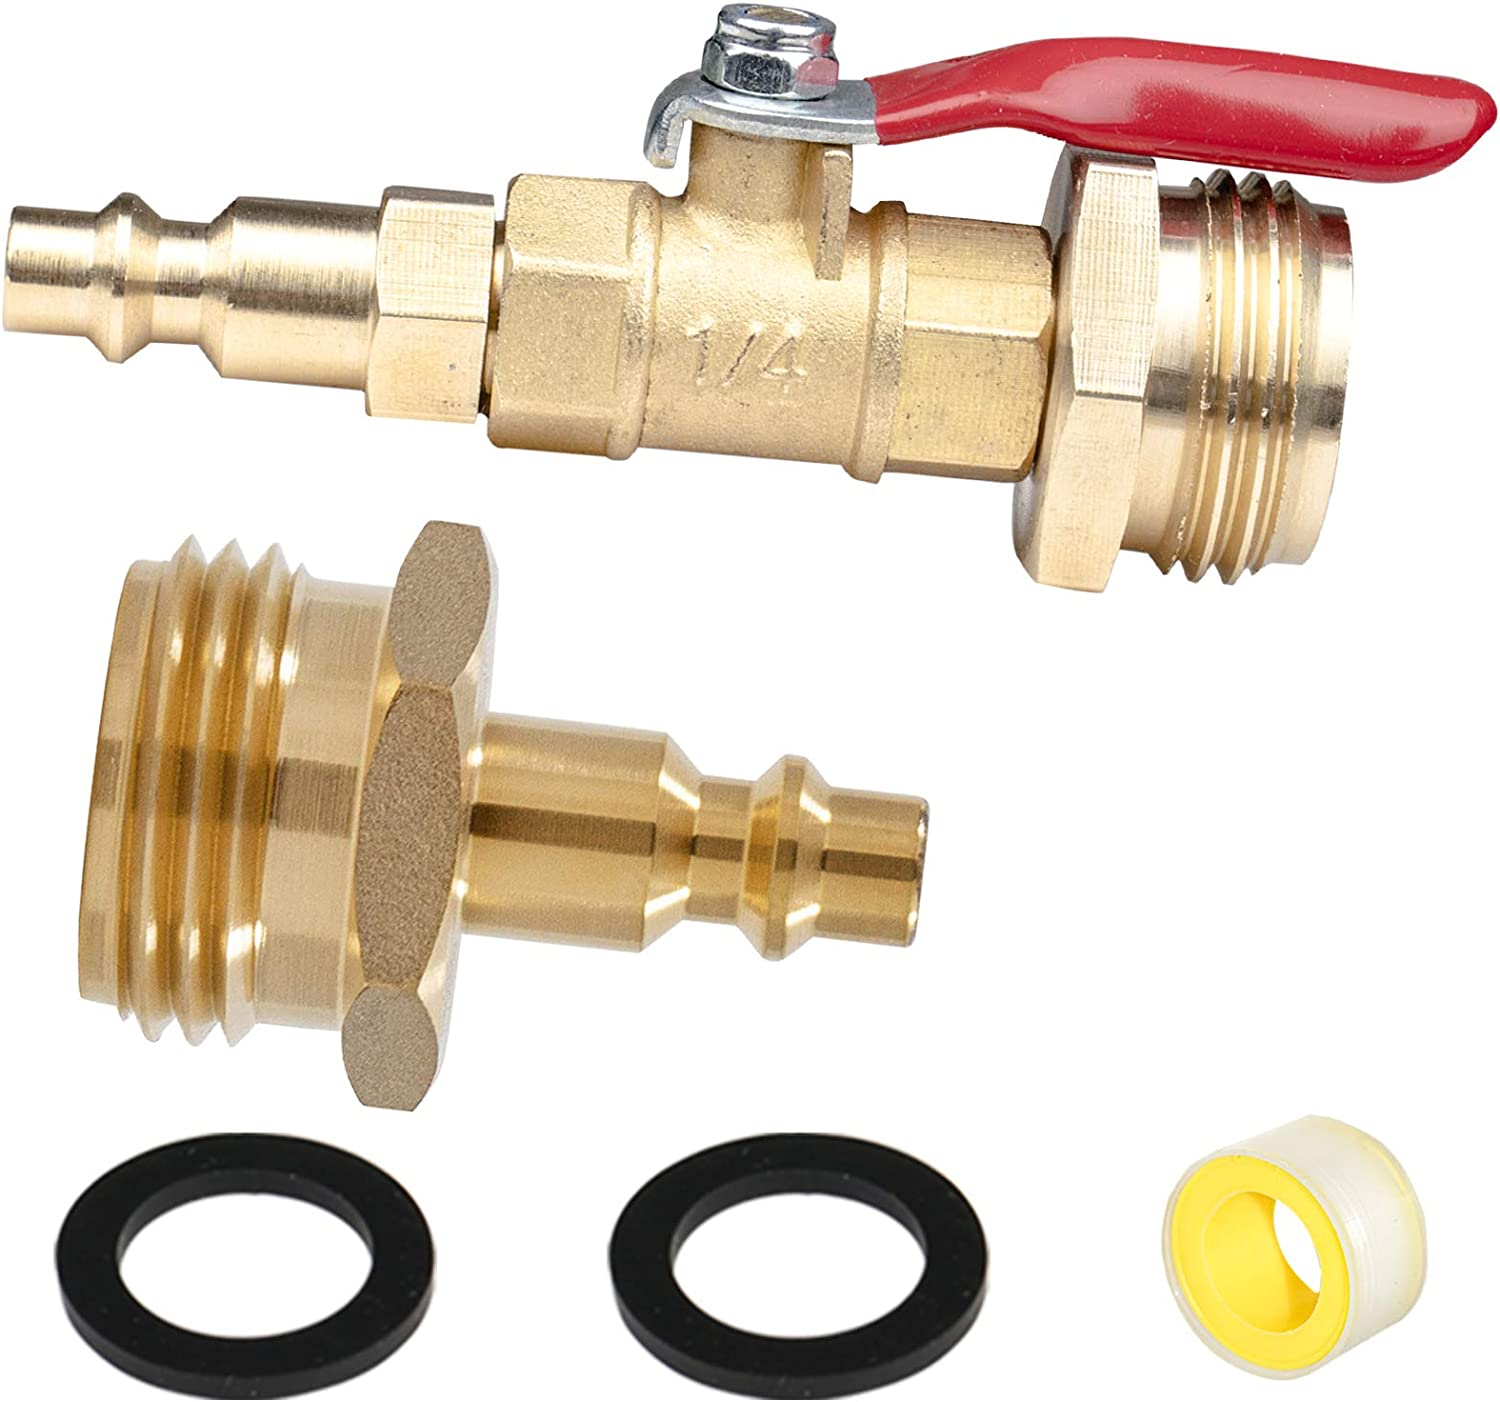 WHK RV Winterize Blowout Adapter,Blow Out Plug with 1/4 Inch Male Brass Quick Plug and 3/4 Inch Male GHT Thread,Winterizing Air Nozzle with Ball Valve for Blowing Out Water Lines RV,Camper,Garden Hose